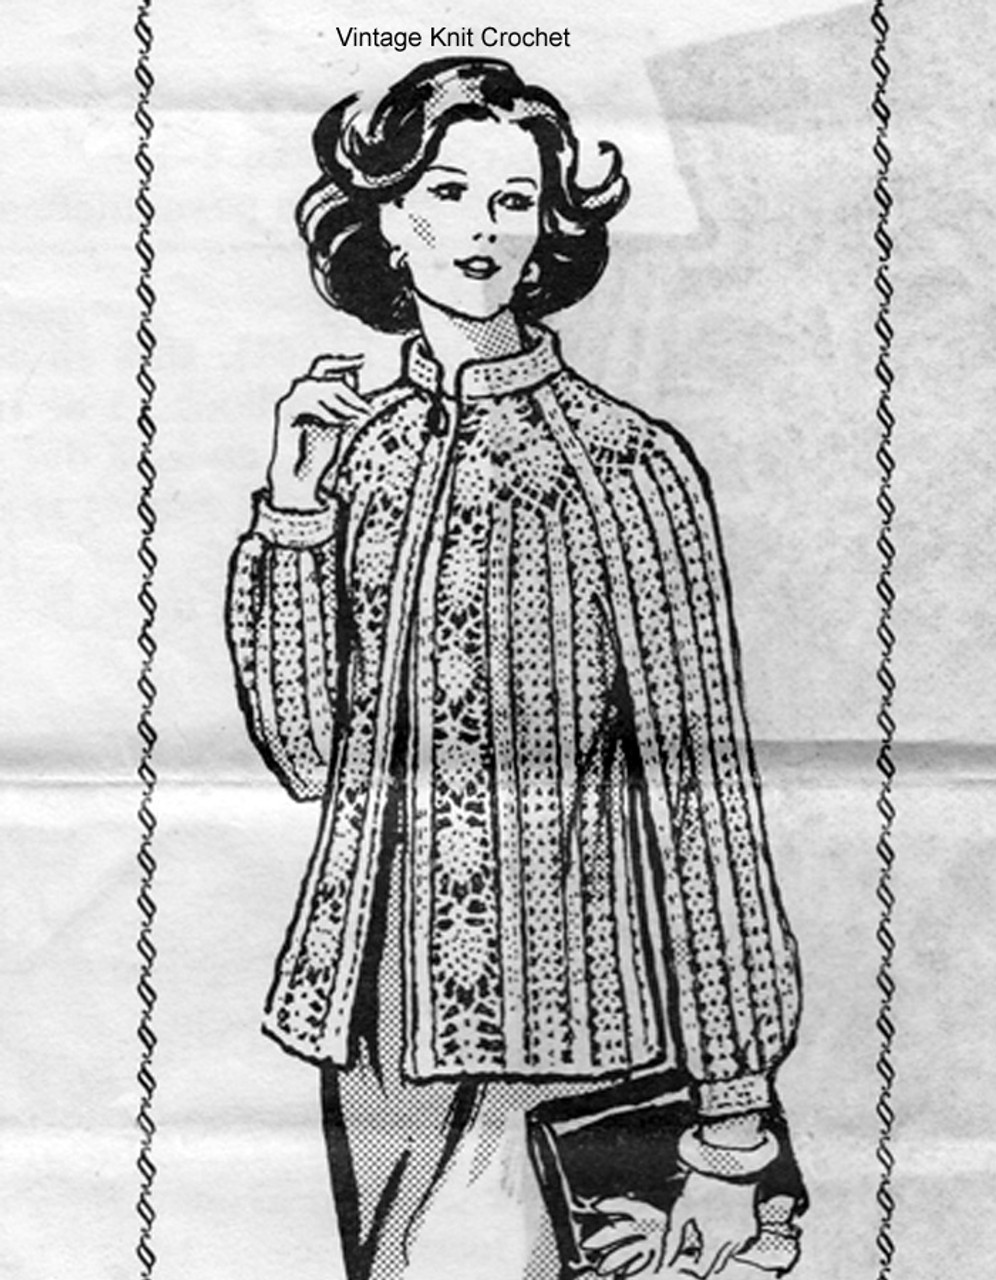 Mail Order Pineapple Crocheted Jacket Pattern, Laura Wheeler 7327